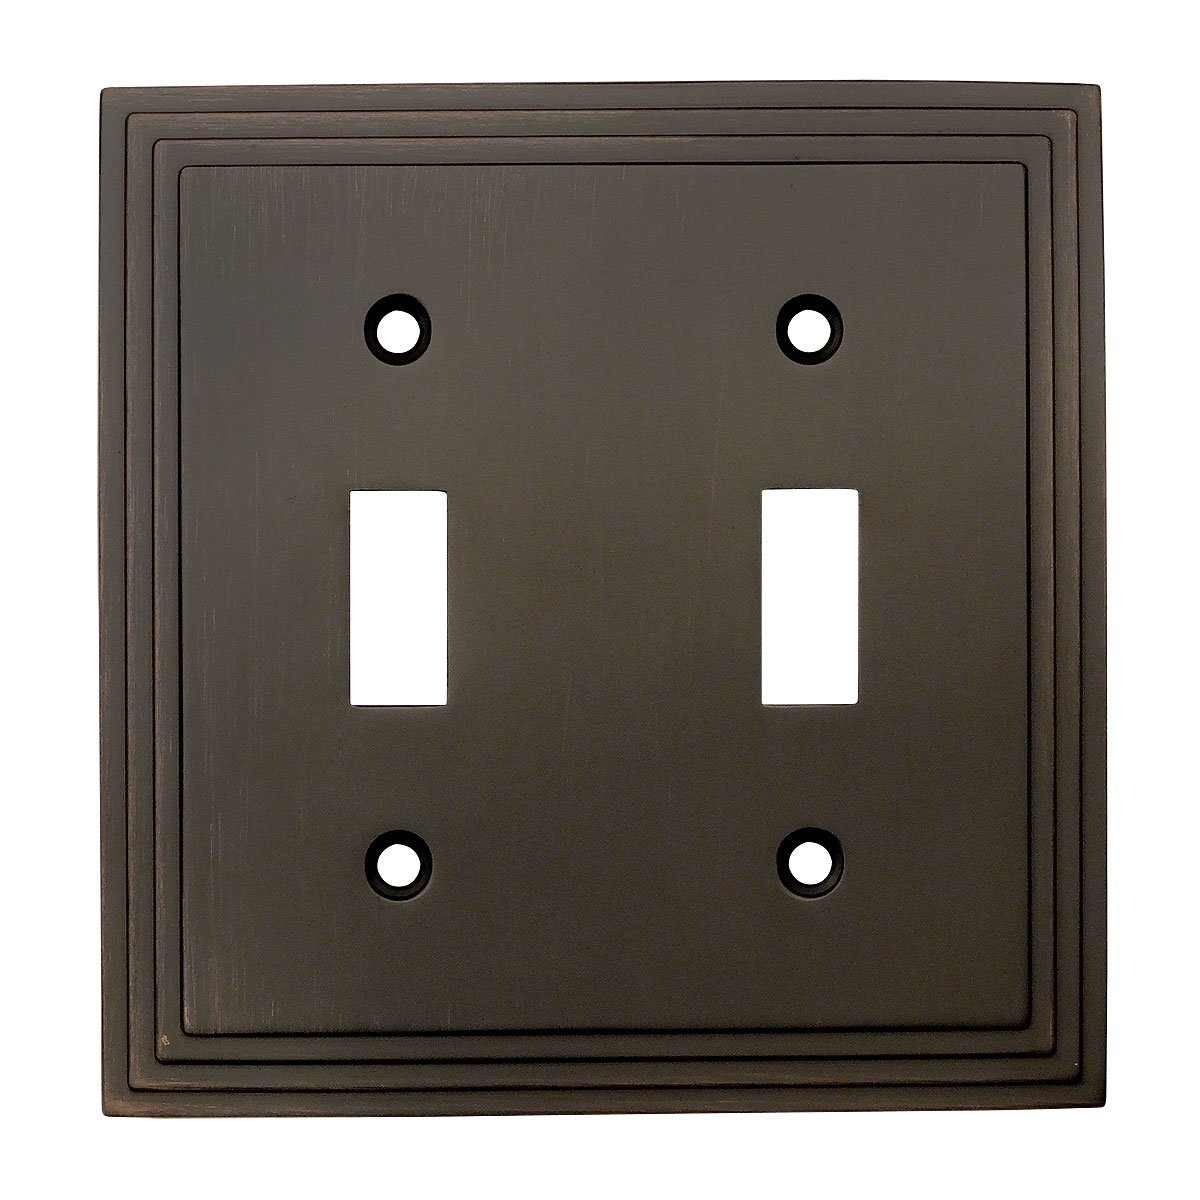 Cosmas 25033 Orb Oil Rubbed Bronze Double Toggle Switch